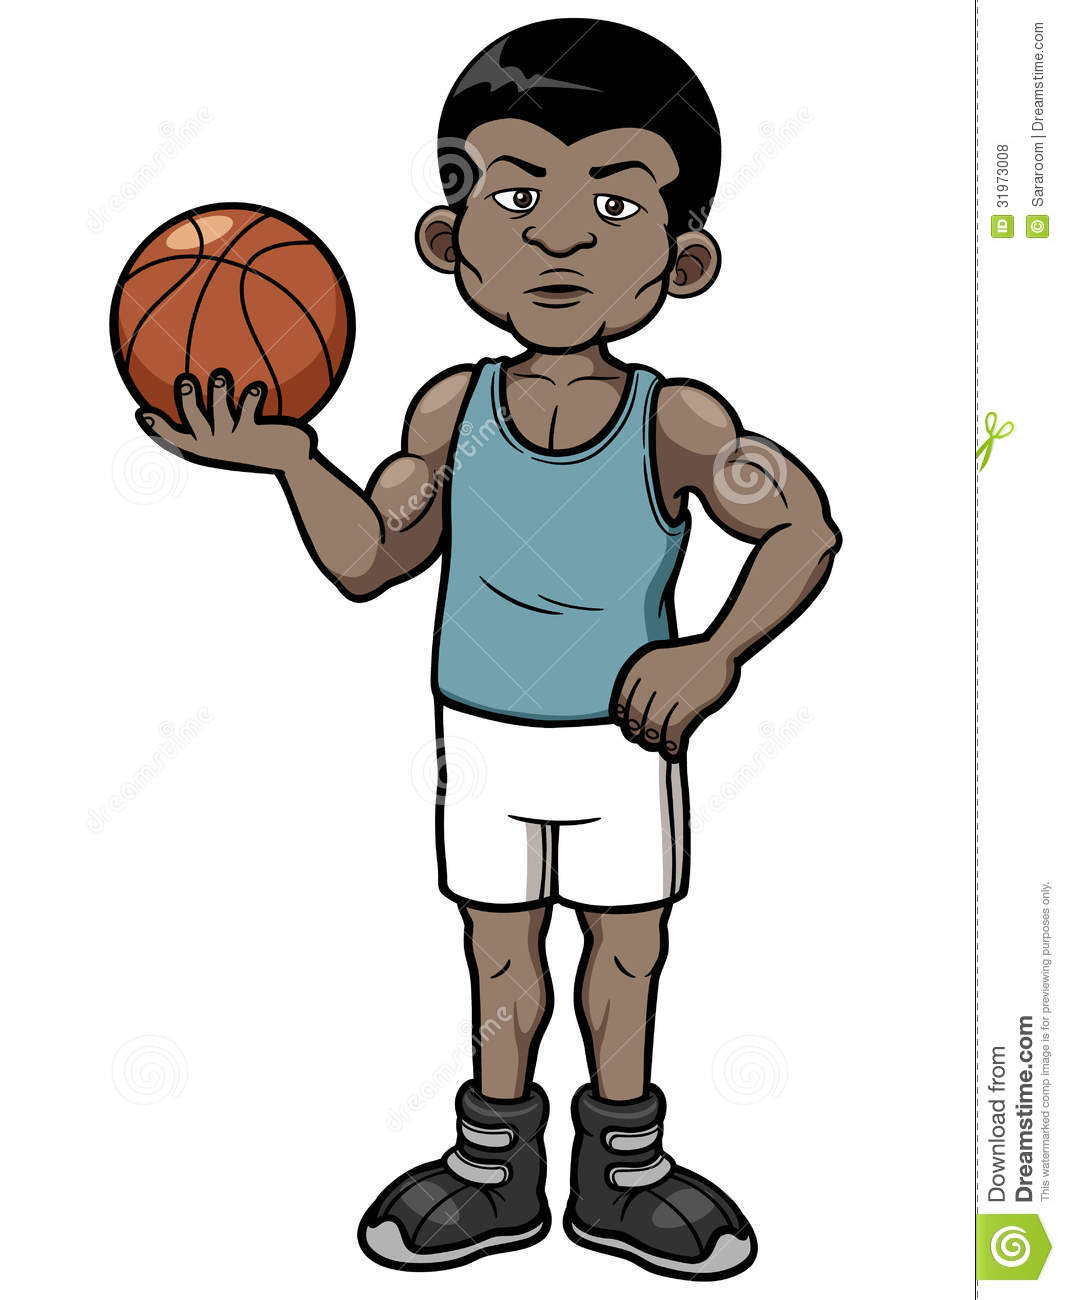 Cartoon basketball player standing